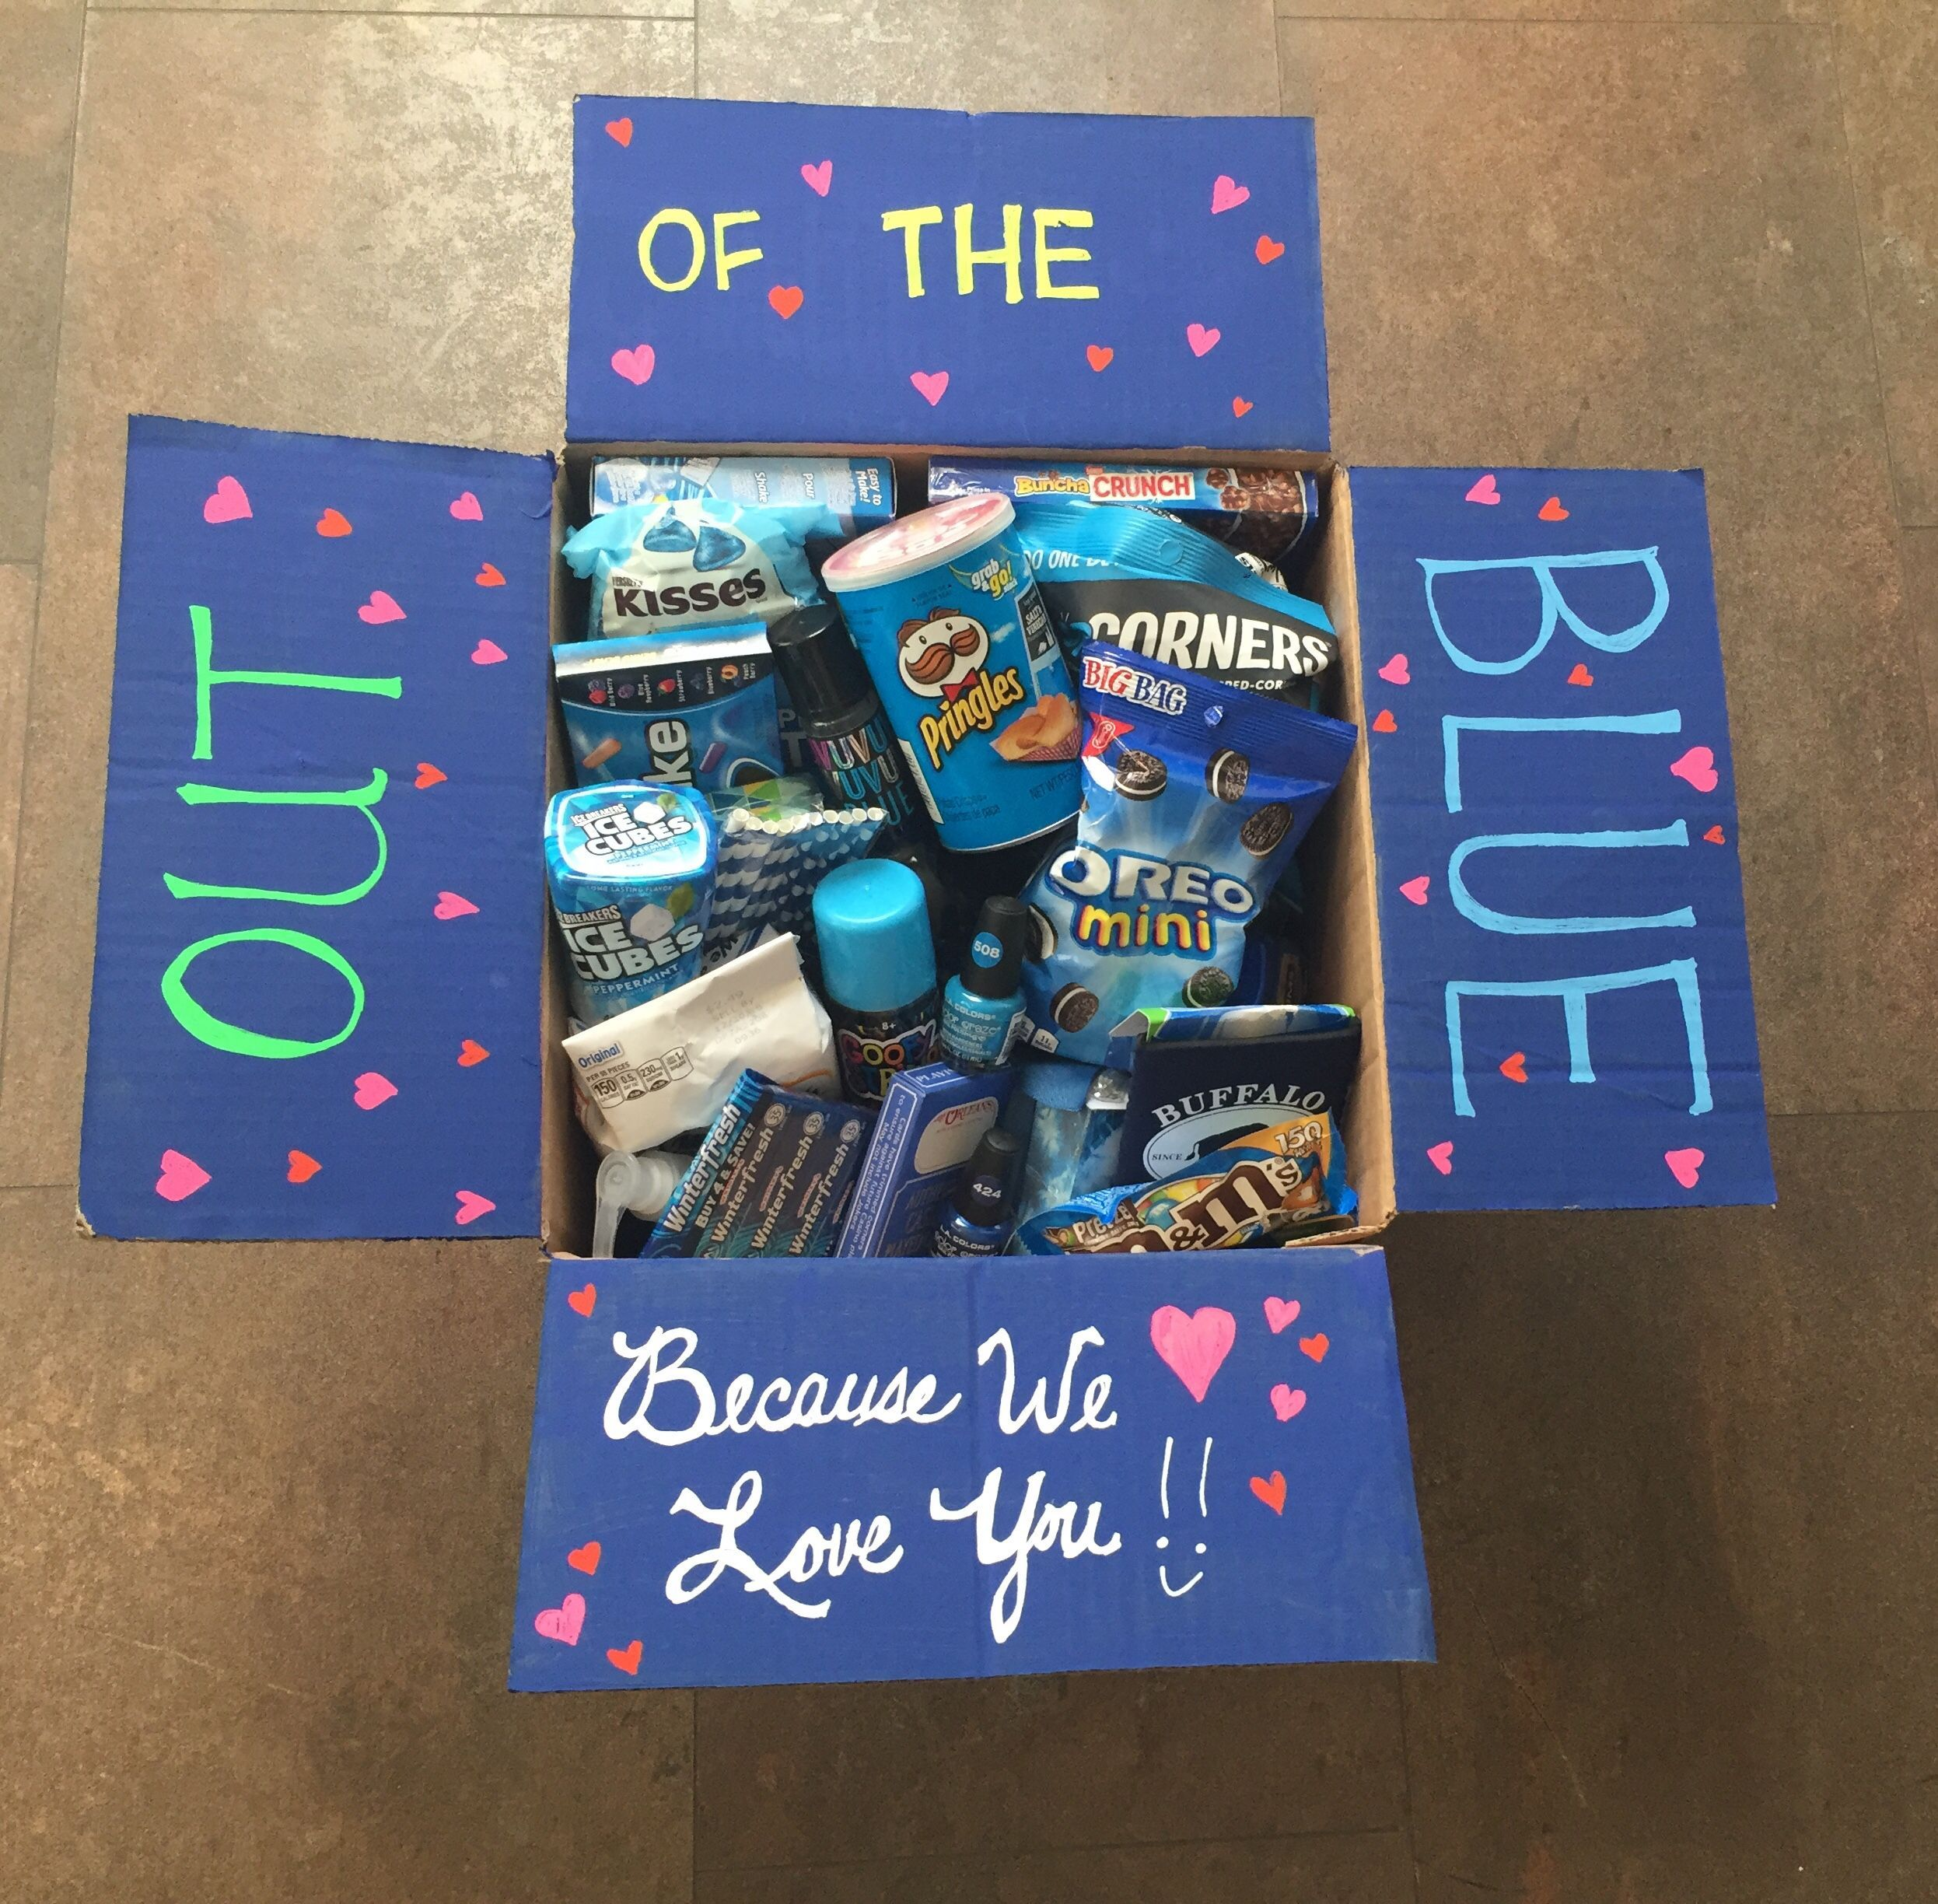 Care Package For My College Girl Best Friend Christmas Gifts Birthday Gifts For Bestfriends Friend Birthday Gifts